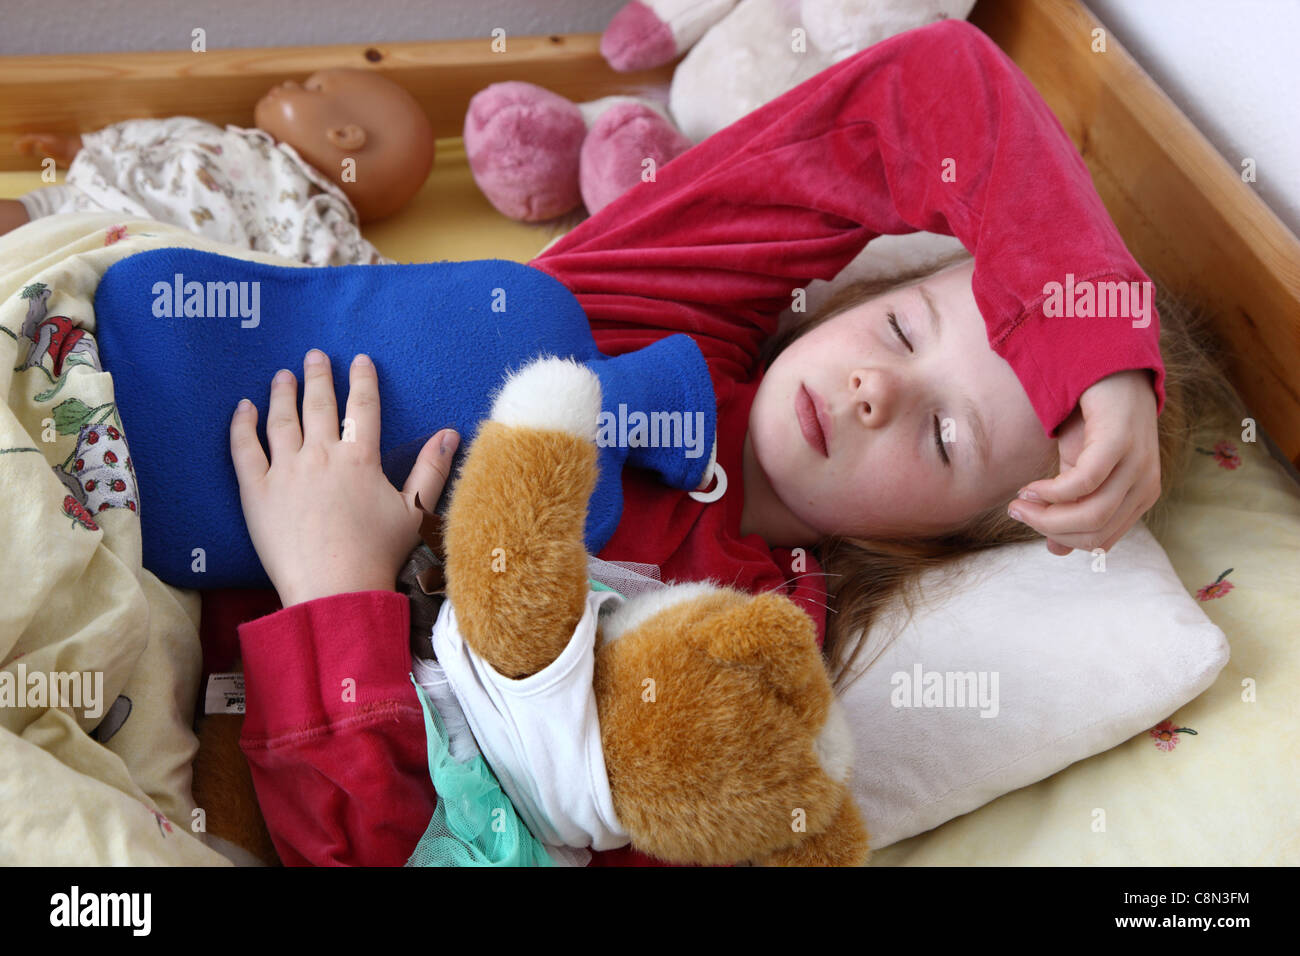 Young girl, 10 years old, lies in bed, at home, sick with a cold. Using a hot-water bag, accompanied by some cuddly - Stock Image